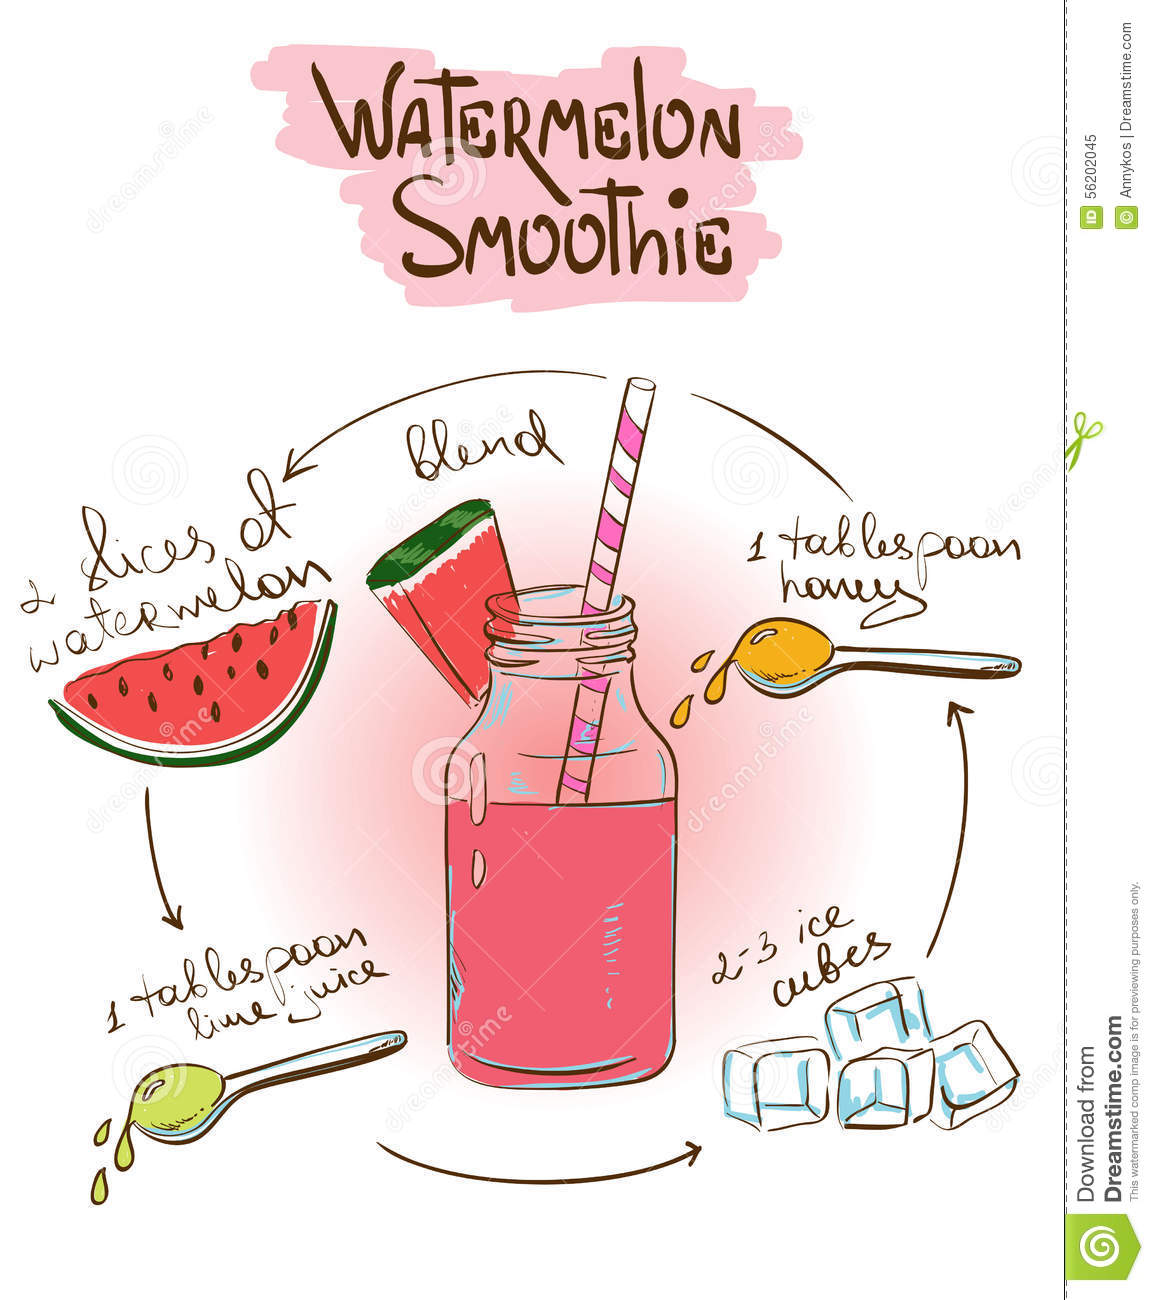 Sketch watermelon smoothie recipe stock vector image for Cocktail recipes with ingredients on hand